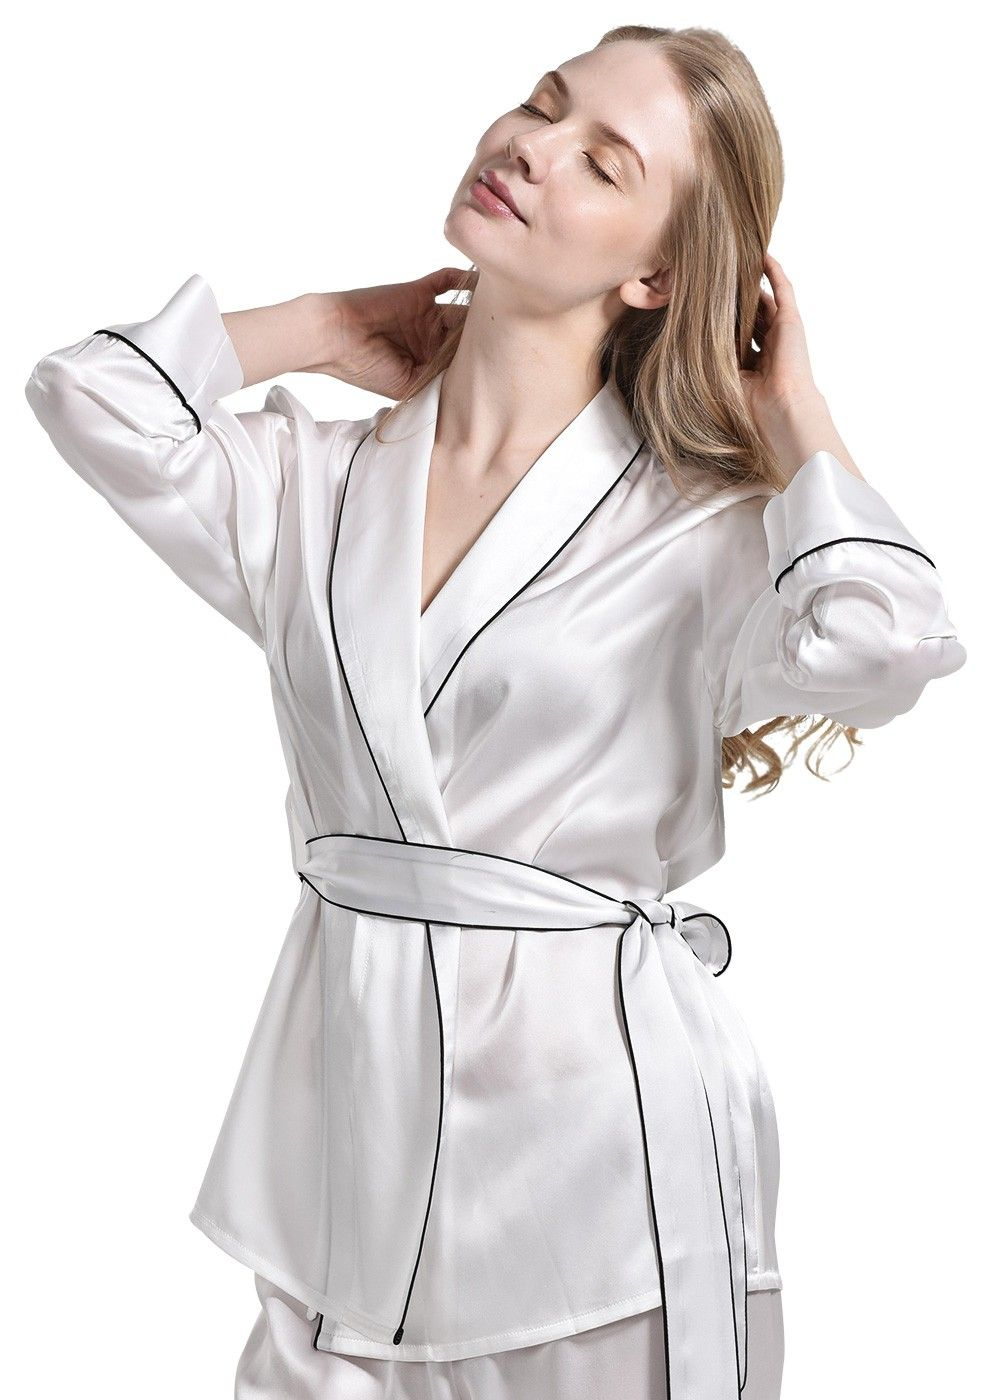 e6bdfffccb 100% Silk Pajama Top Plus Size Nightwear For Ladies - OOSilk